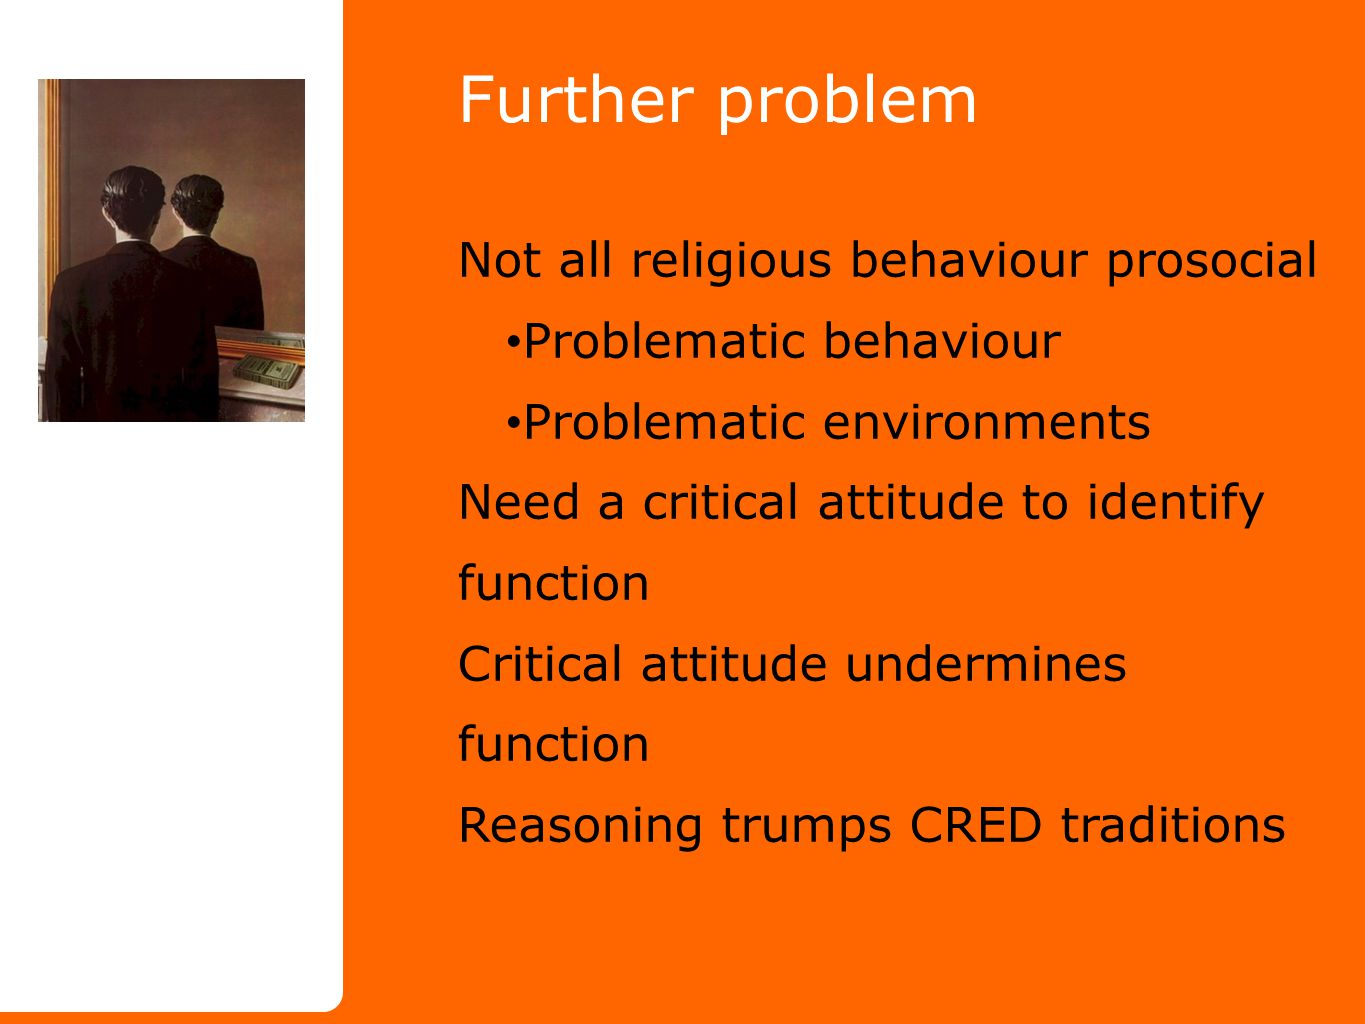 Further problem Not all religious behaviour prosocial Problematic behaviour Problematic environments Need a critical attitude to identify function Critical attitude undermines function Reasoning trumps CRED traditions